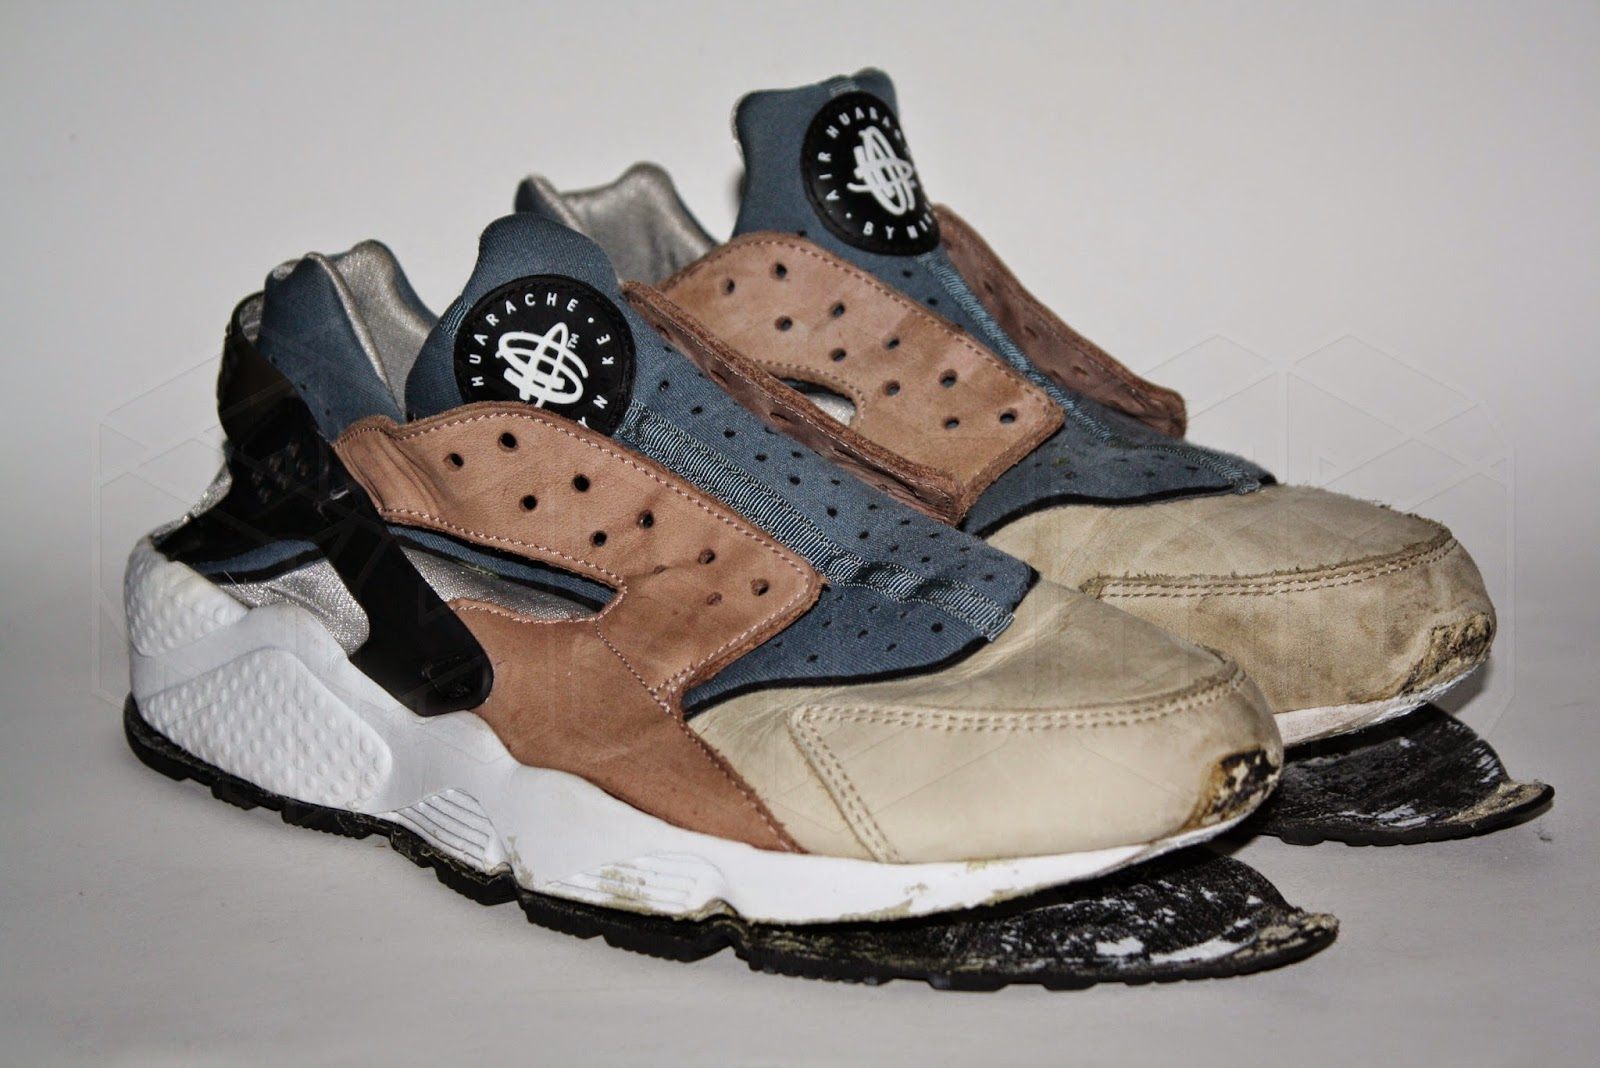 097be421ad80 ... Nike Air Huarache Escape. Excess Glue Removal Clean and Rebuild. ...